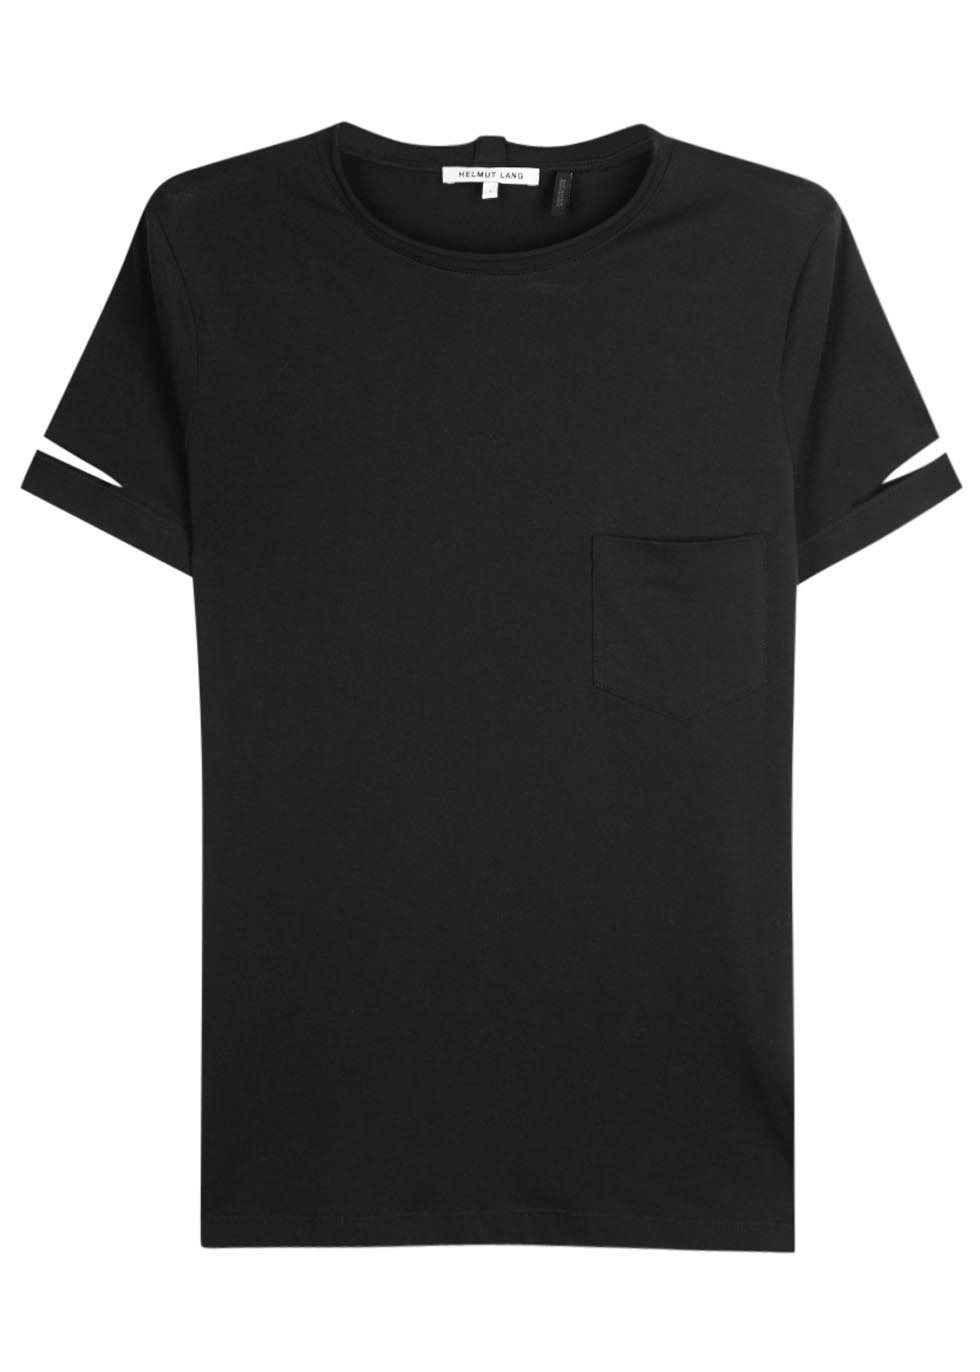 Black Cut Out Cotton T Shirt Size - neckline: round neck; pattern: plain; style: t-shirt; predominant colour: black; occasions: casual; length: standard; fibres: cotton - 100%; fit: straight cut; sleeve length: short sleeve; sleeve style: standard; pattern type: fabric; texture group: jersey - stretchy/drapey; season: a/w 2015; wardrobe: basic